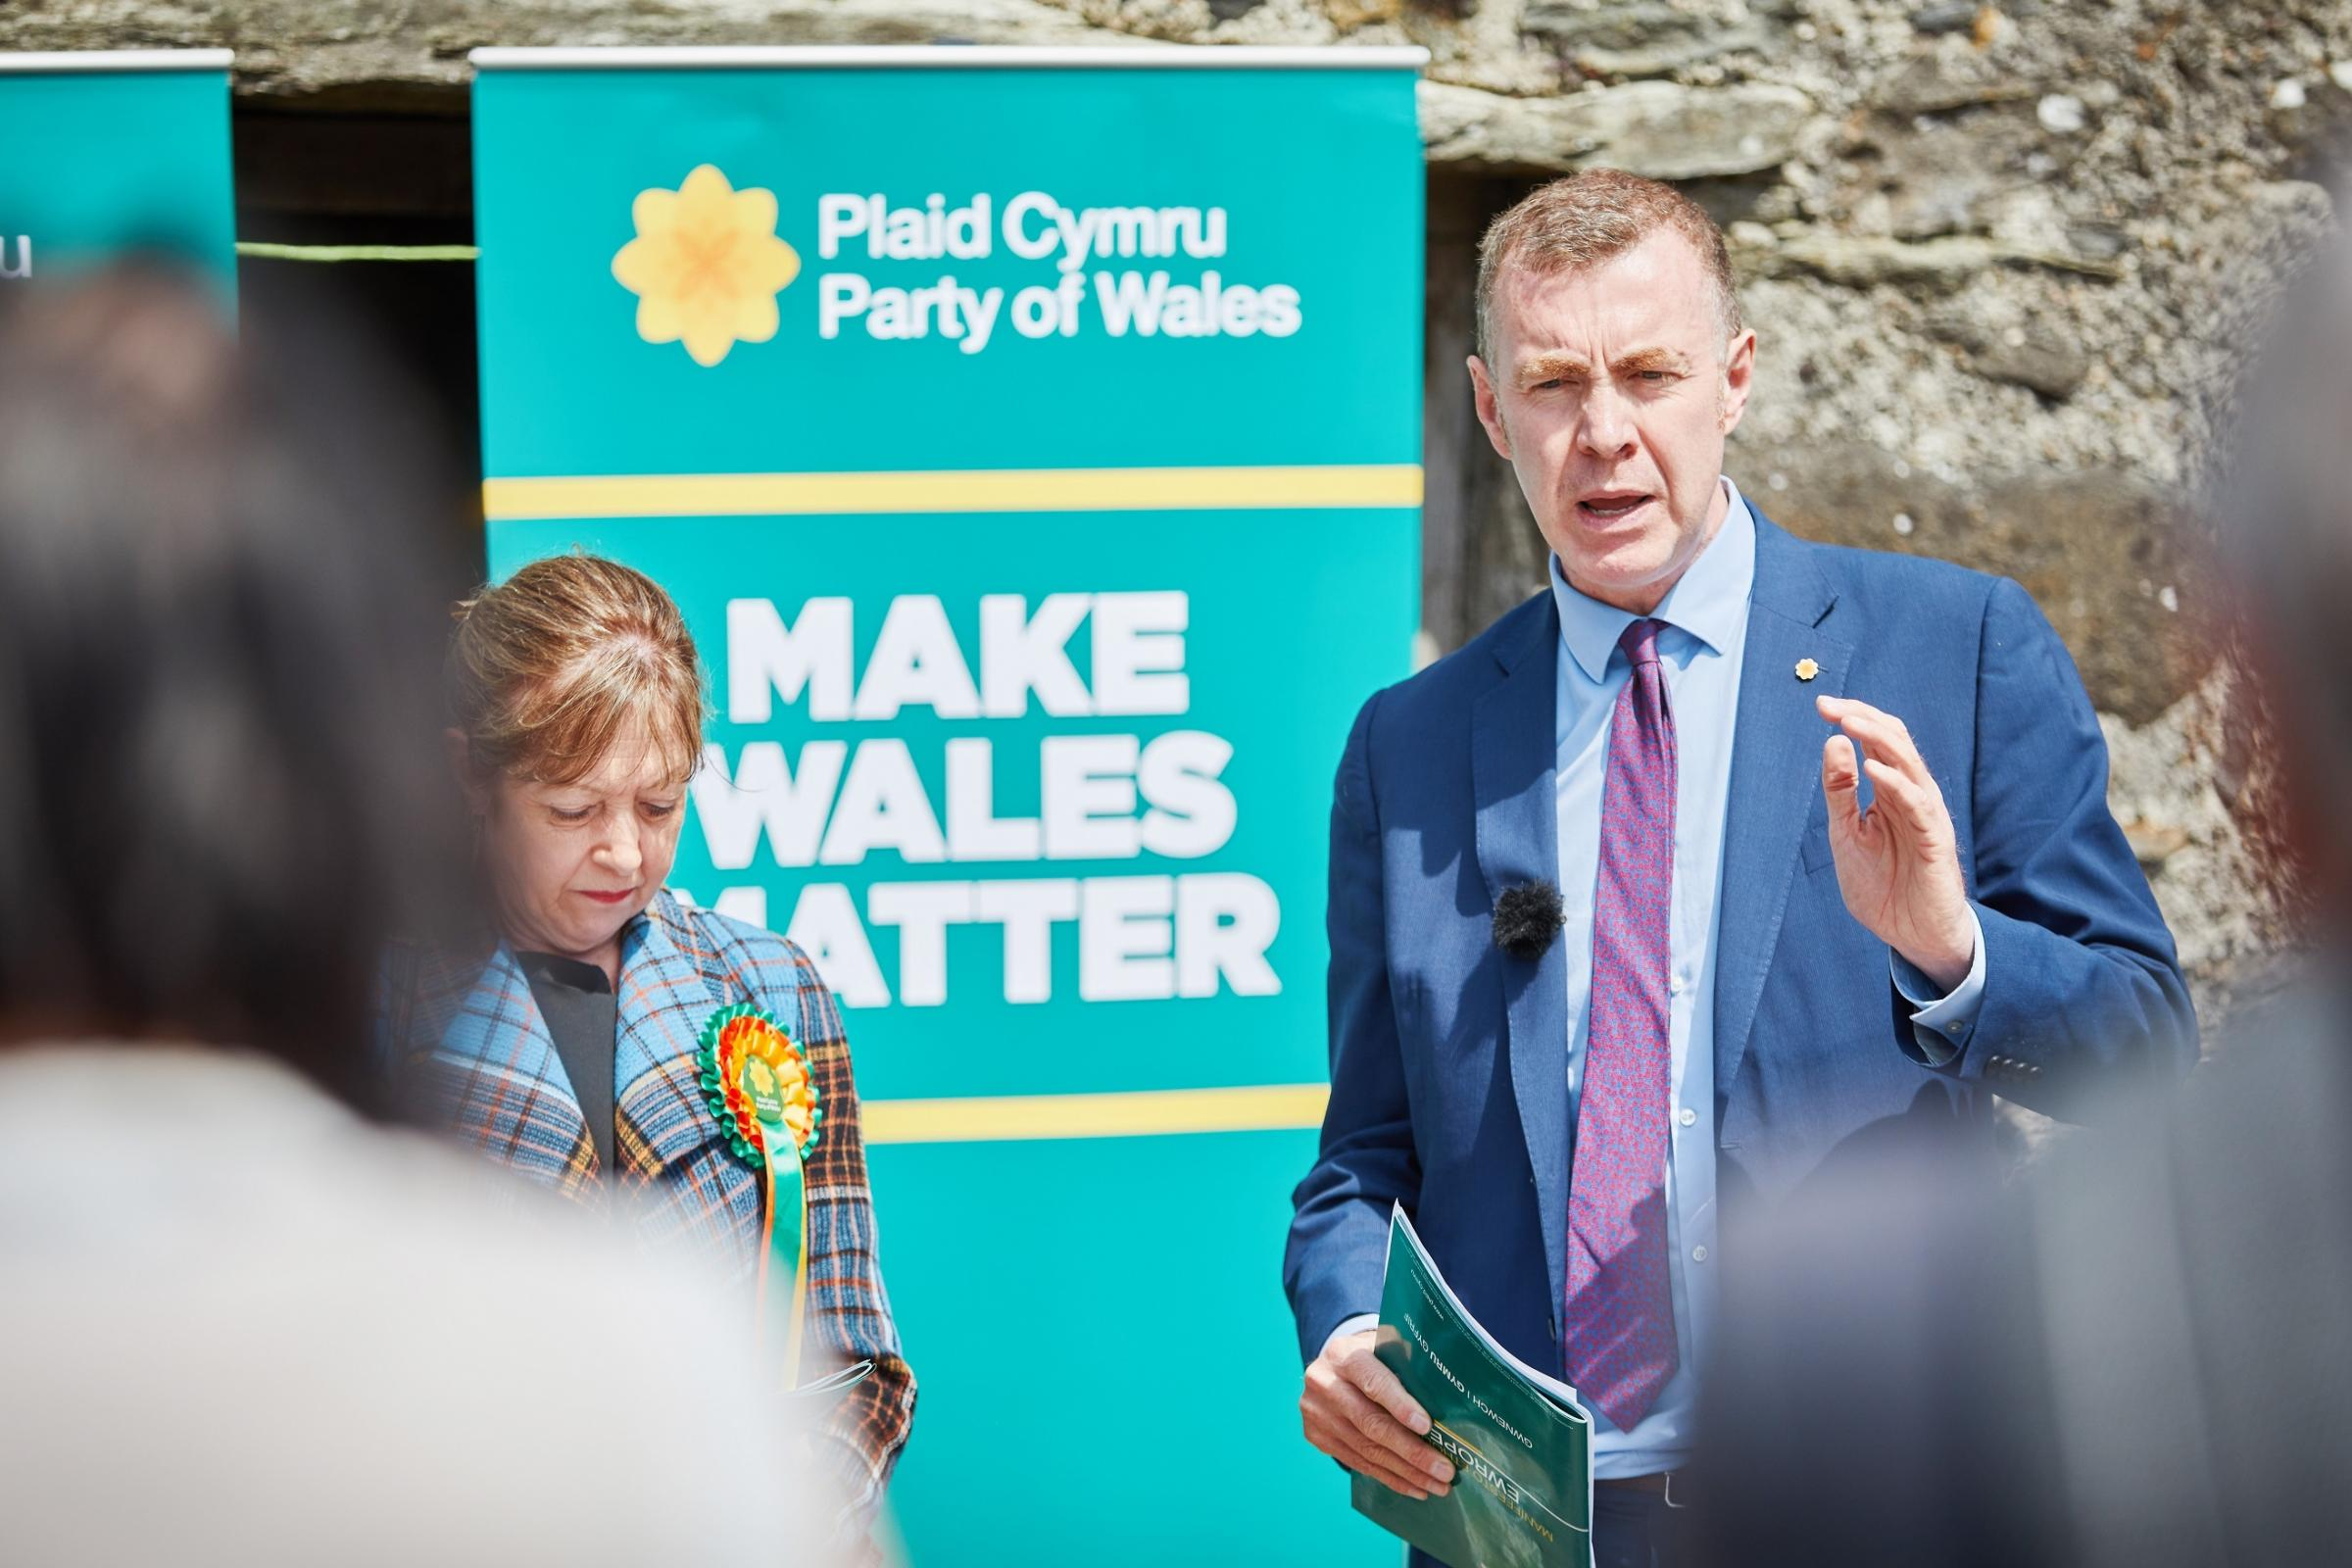 Plaid Cymru leader suggests election pact with pro-Remain parties on the cards